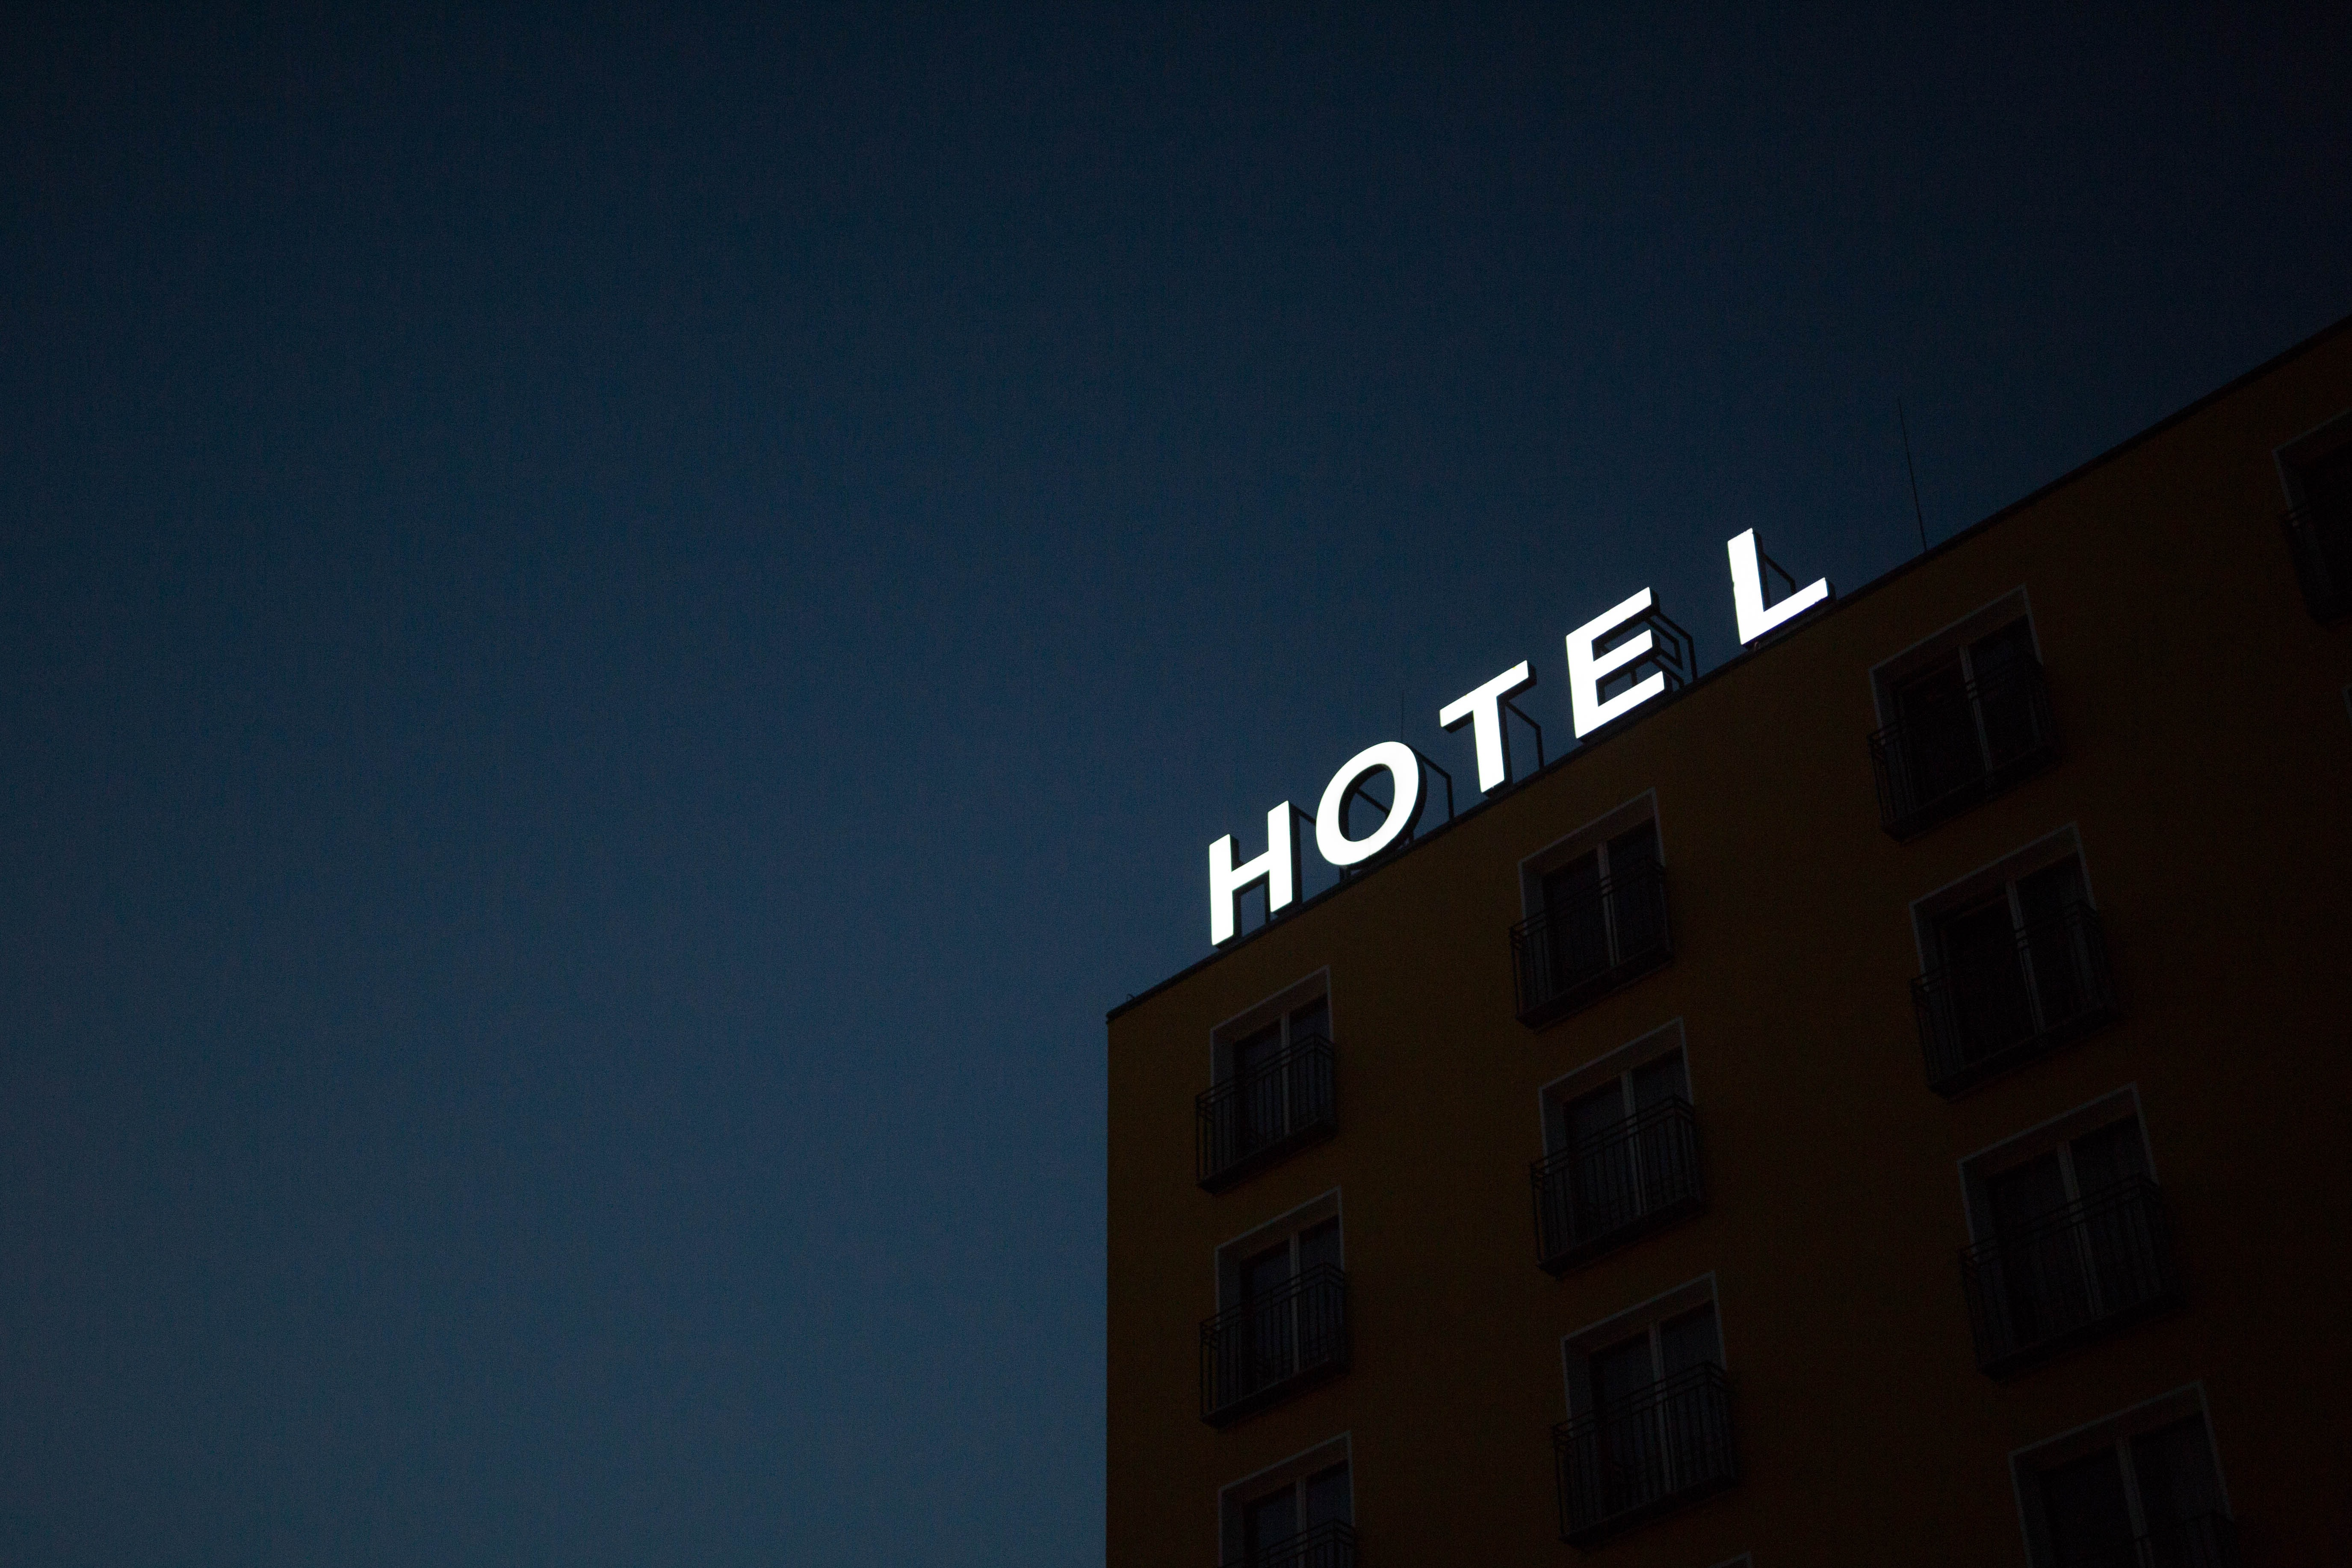 Health and Safety Guidelines of Hotels or Accommodations in the Philippines